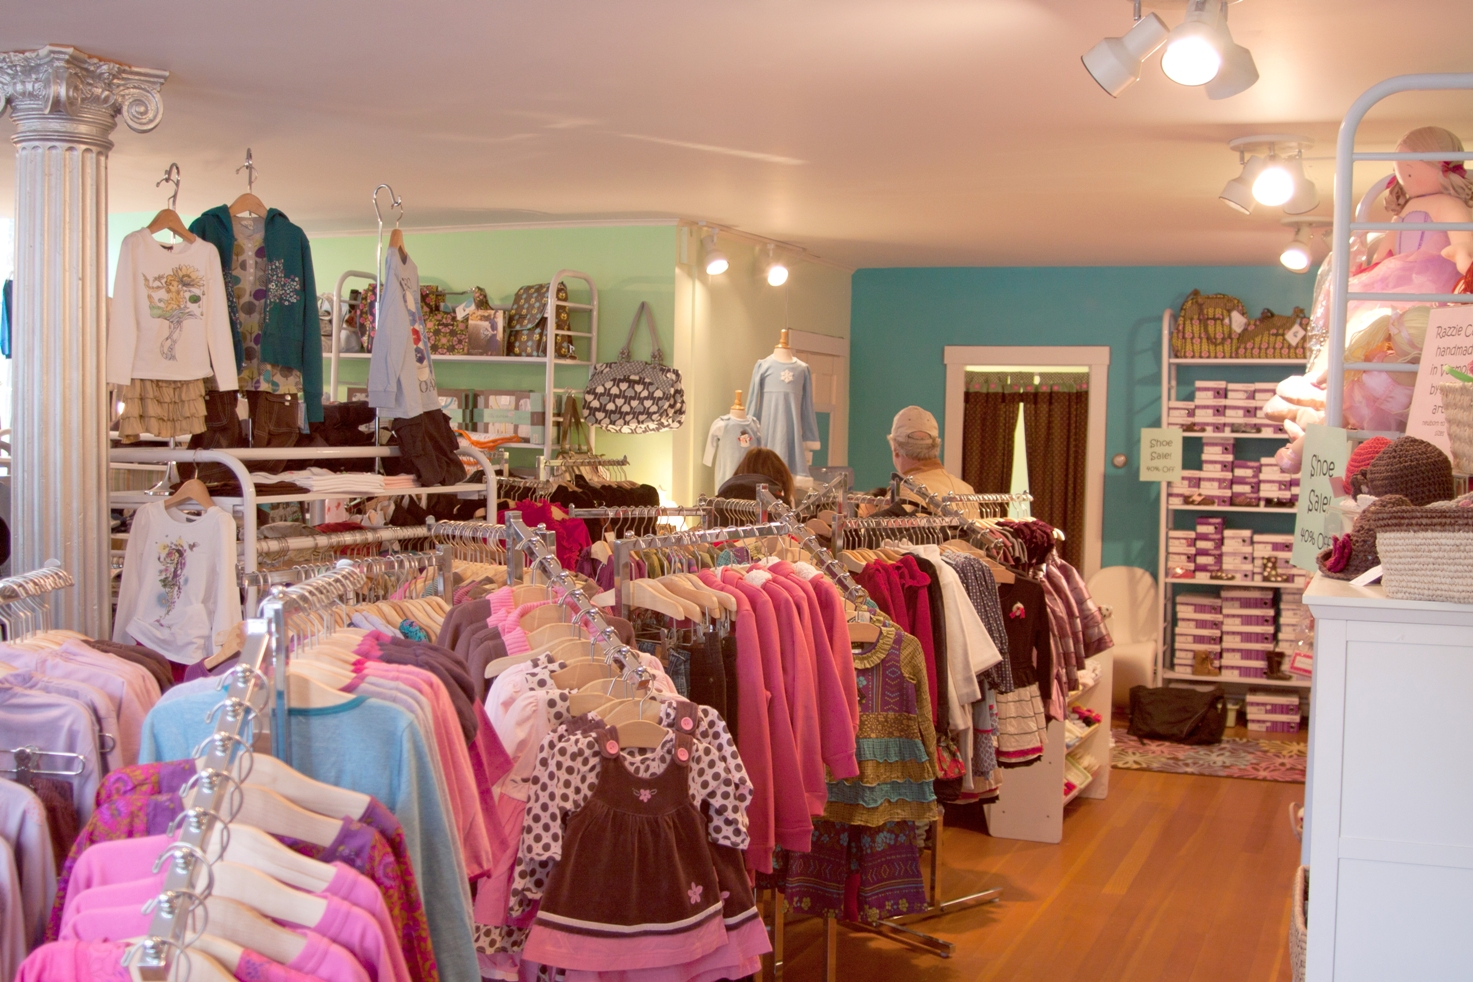 The zone clothing store